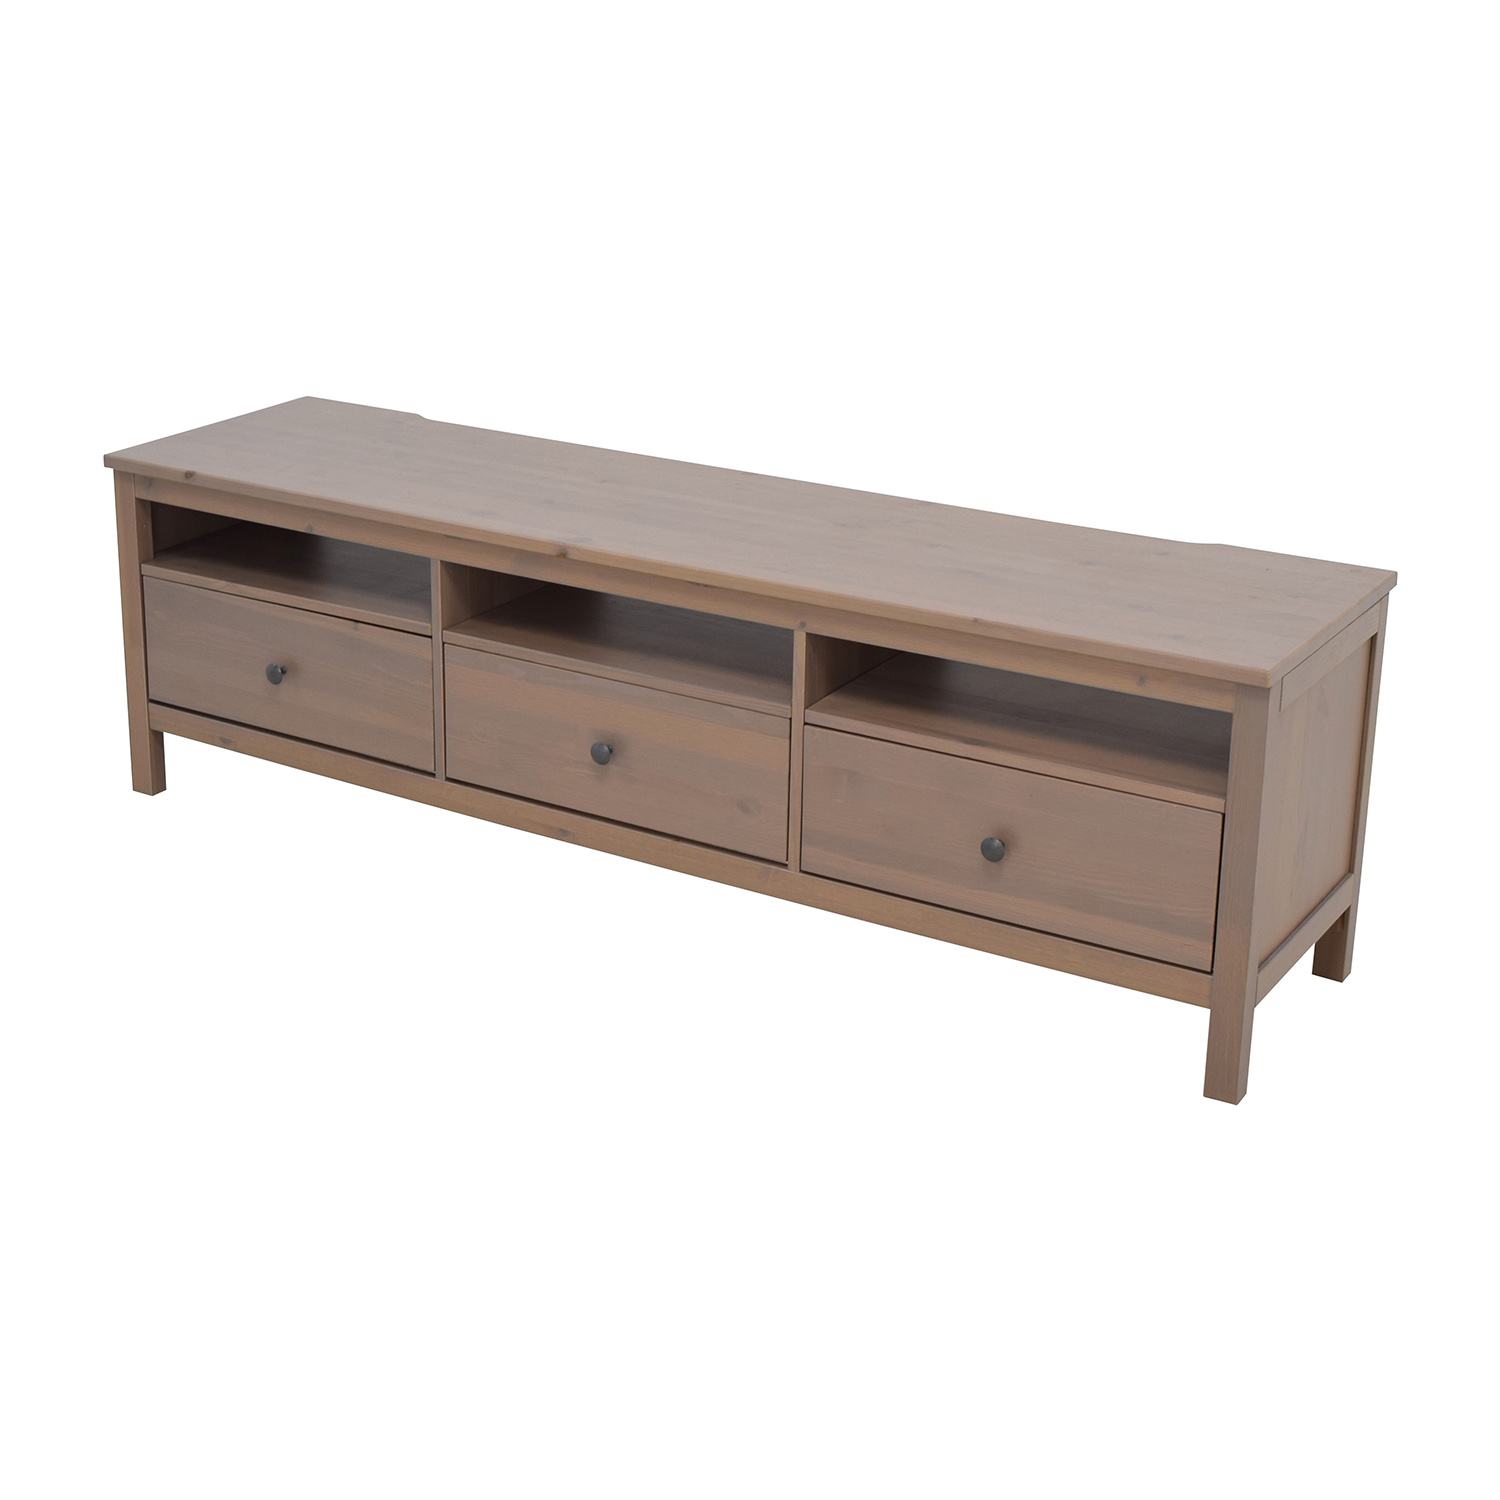 62 off ikea ikea hemnes tv unit with drawers and. Black Bedroom Furniture Sets. Home Design Ideas